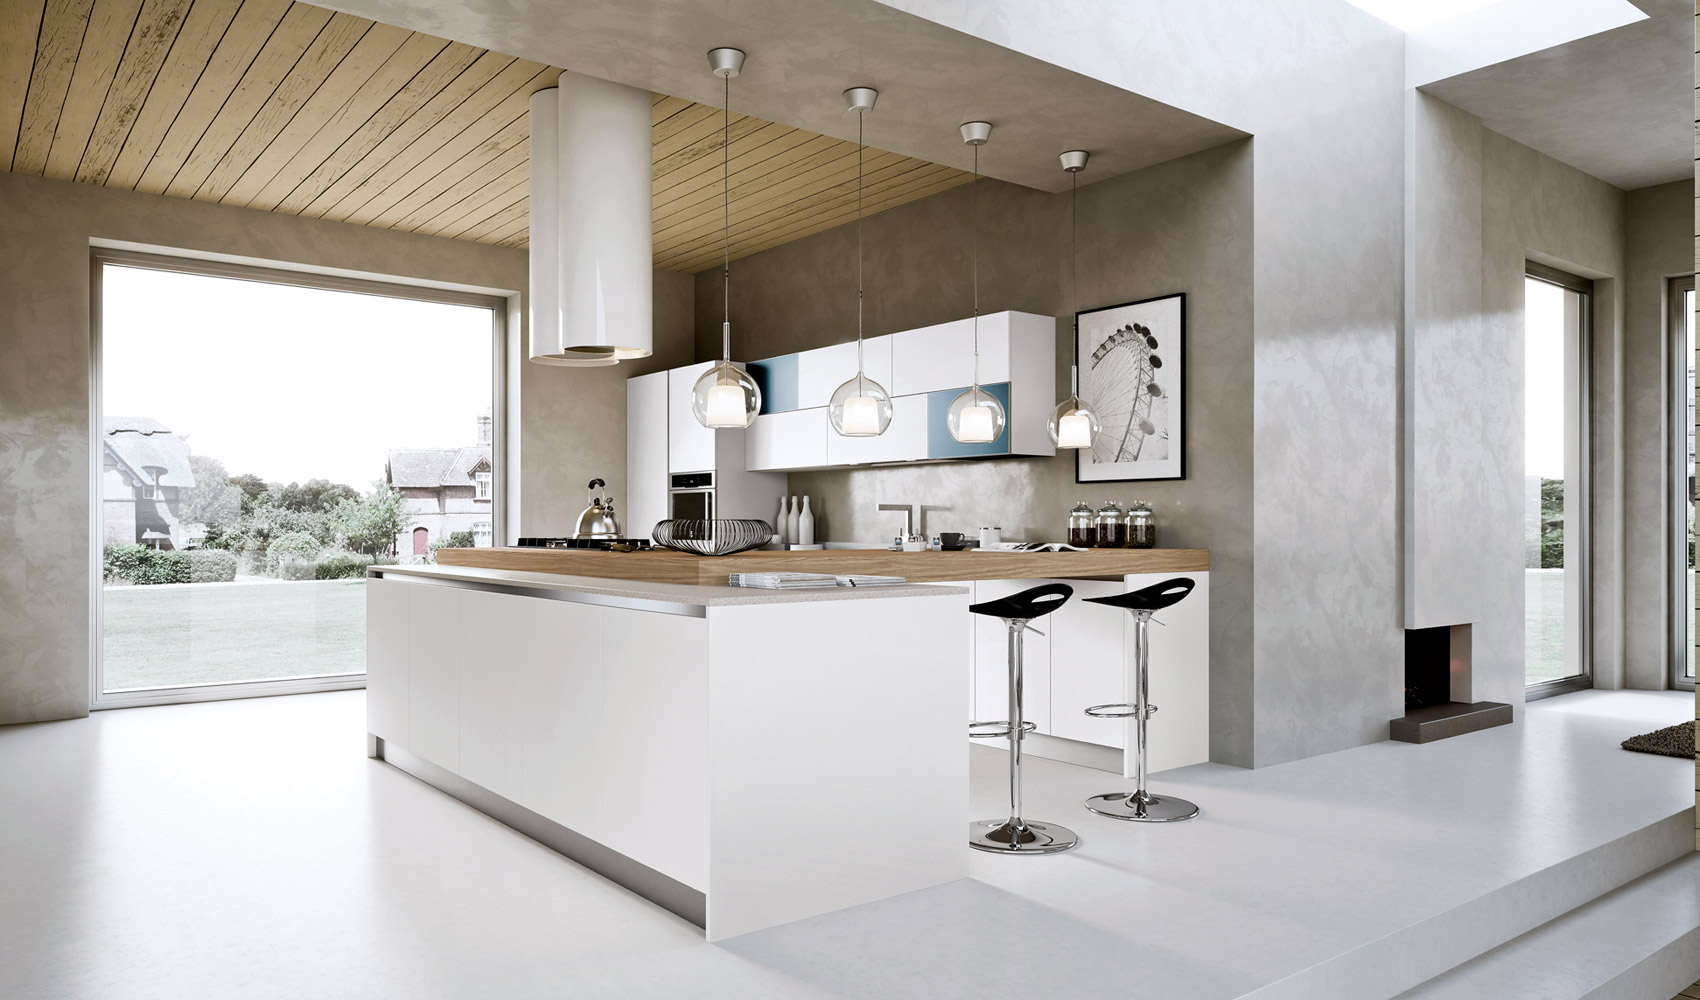 White kitchen interior design ideas - Kitchen styles and designs ...